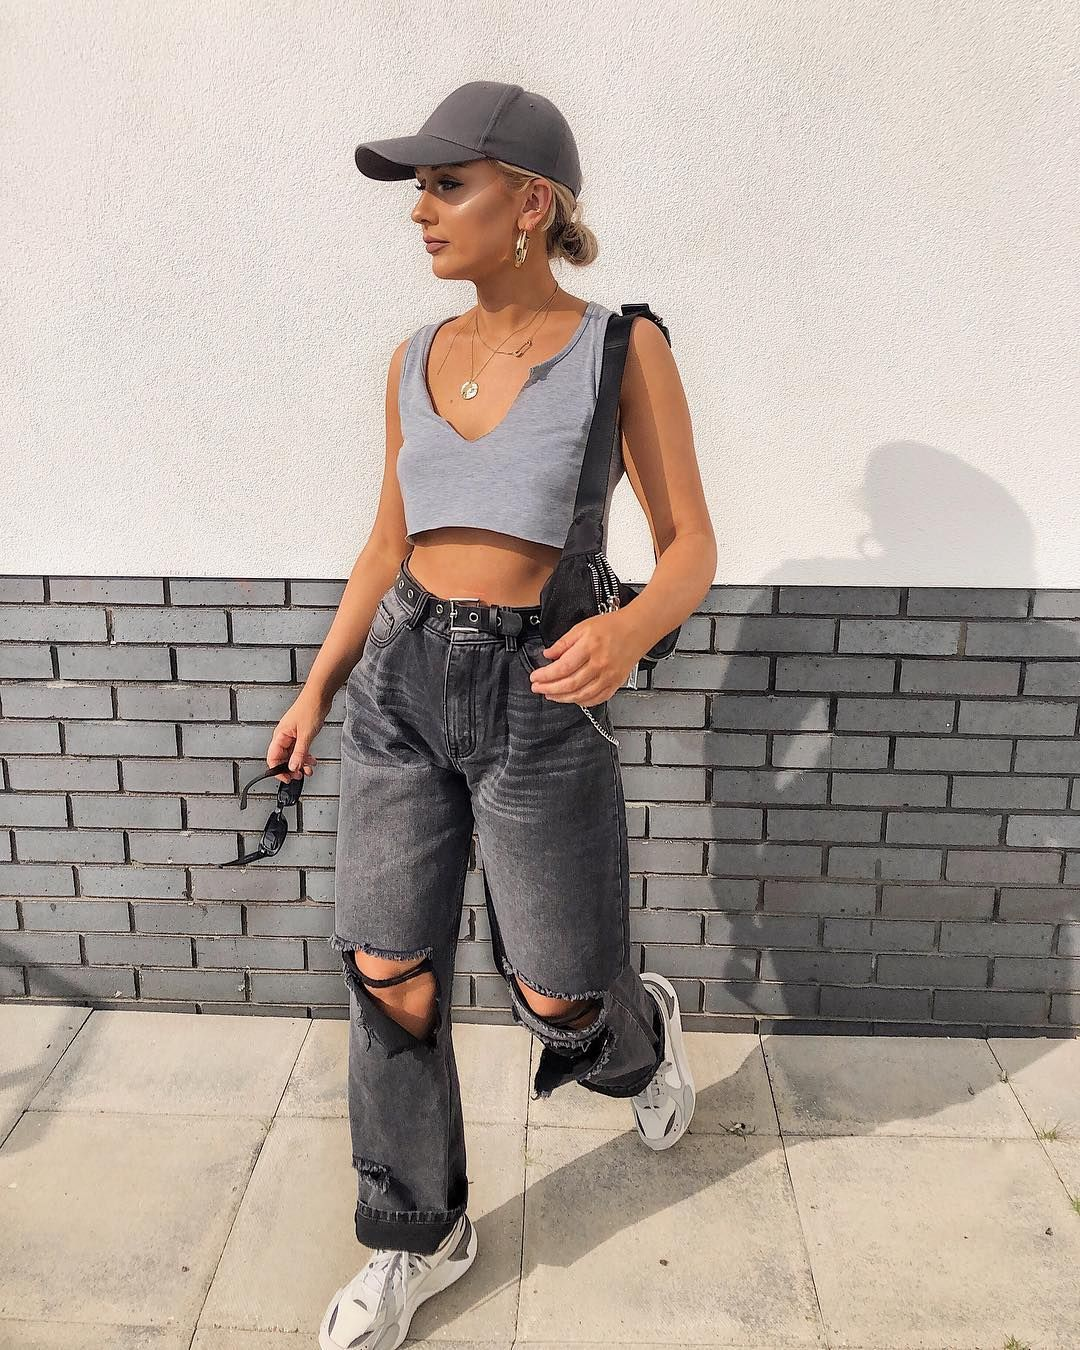 "Amy Shaw on Instagram: ""AD / Spring summer meets tomboy – wearing all @prettylittlething 90s style top & so much love for these baggy jeans, I got them in the blue…"" – Fashion"